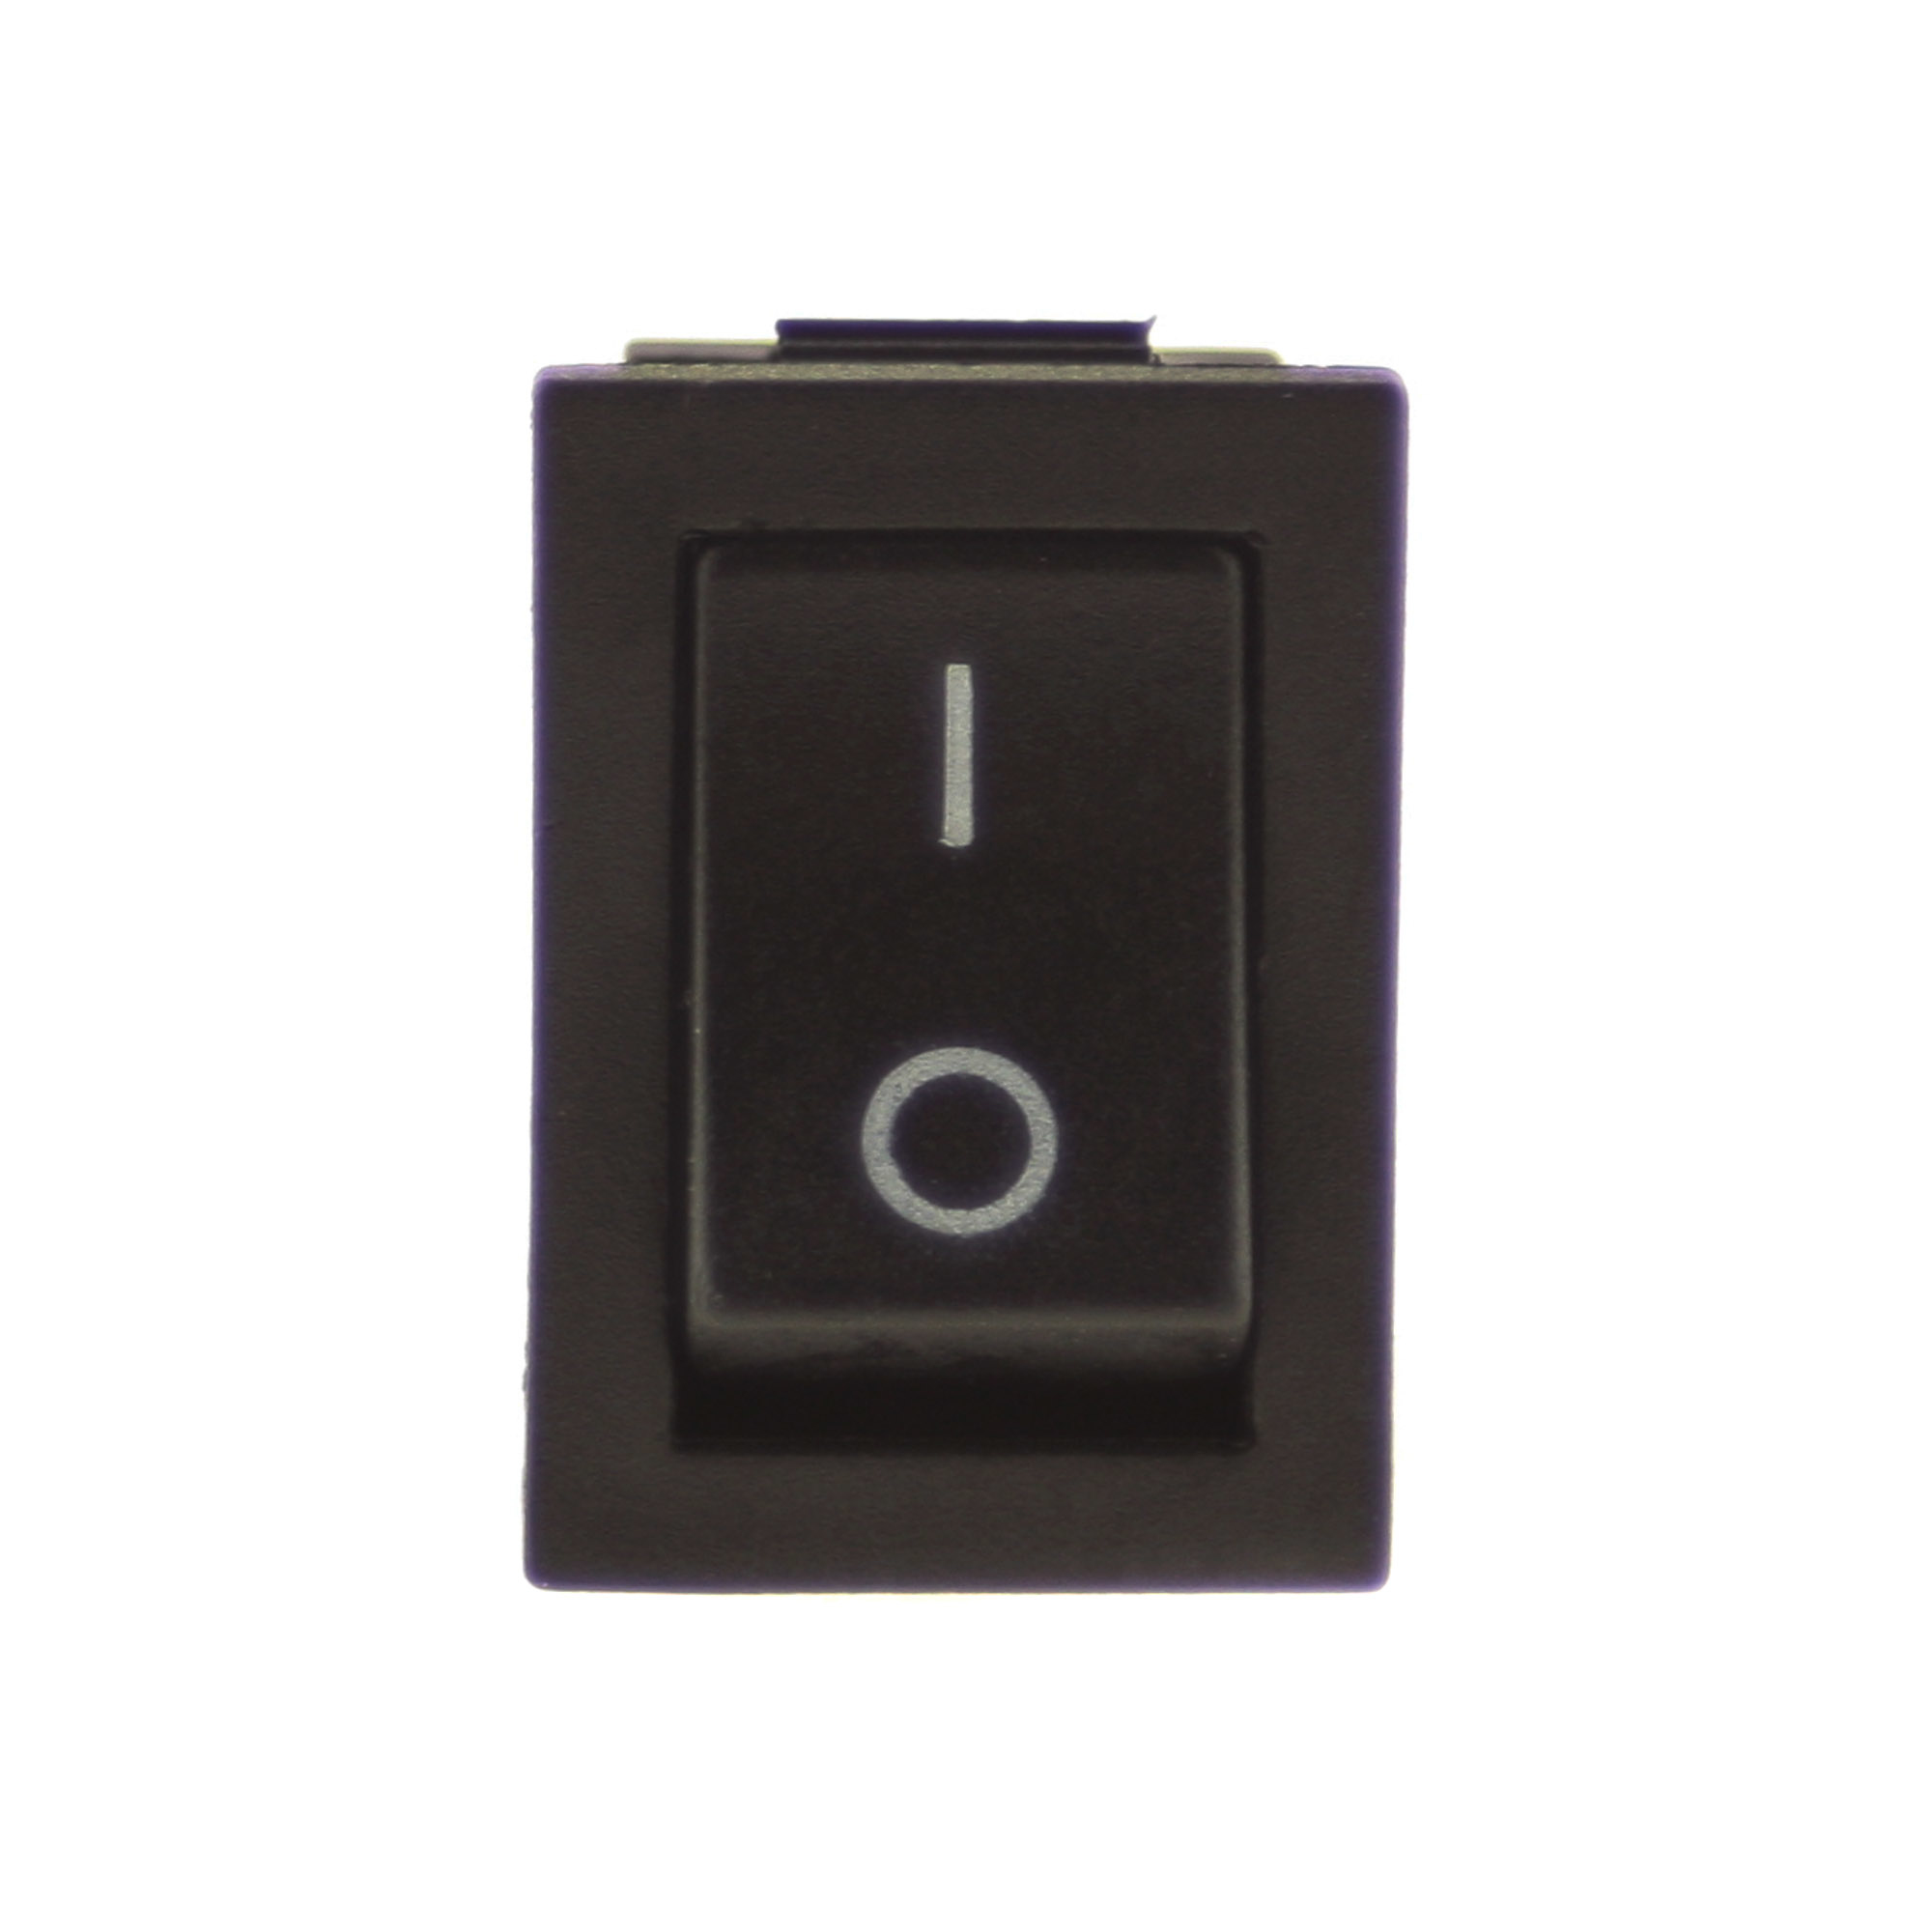 Switch I-0 250V 3A, 21x15mm, black